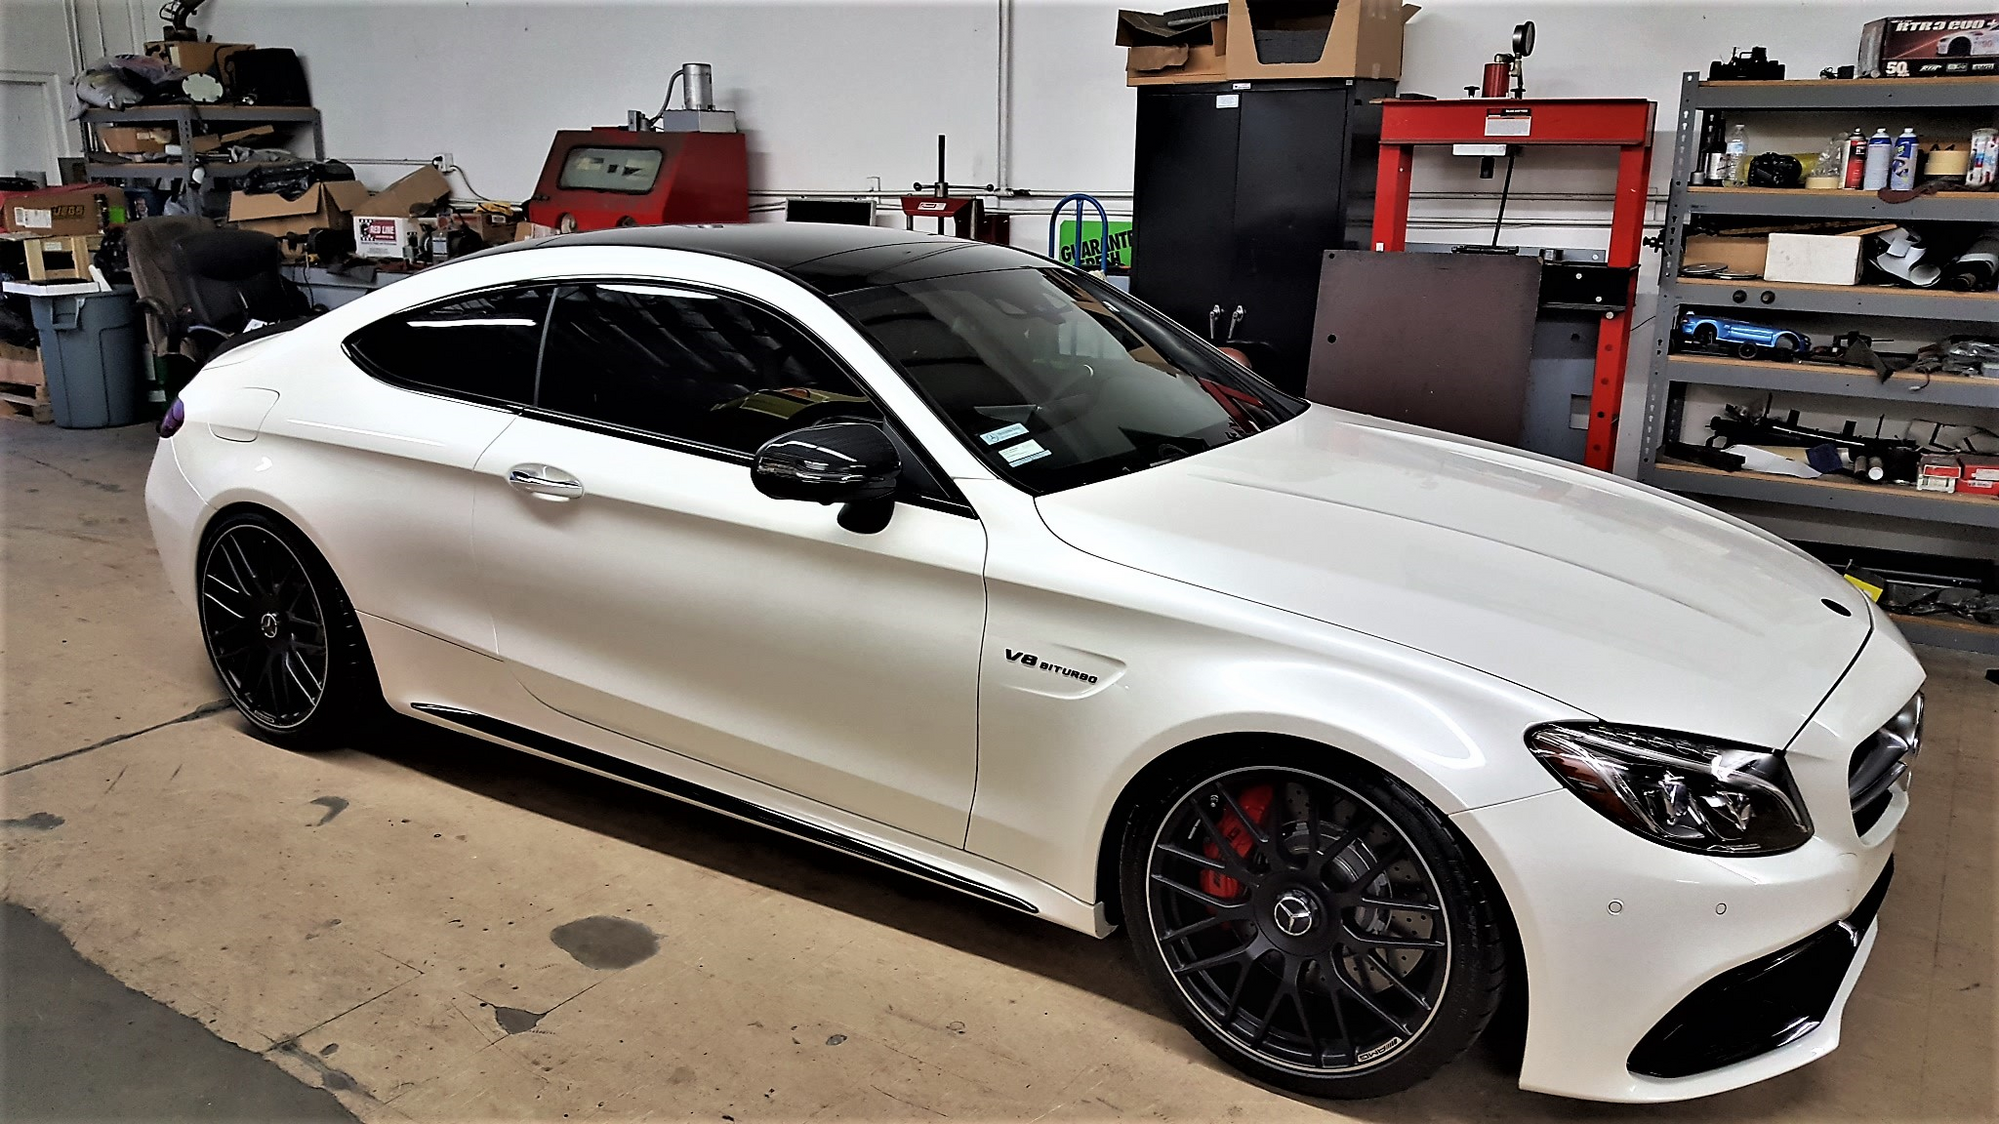 my 10th amg 2017 c63s coupe diamond white page 2 forums. Black Bedroom Furniture Sets. Home Design Ideas